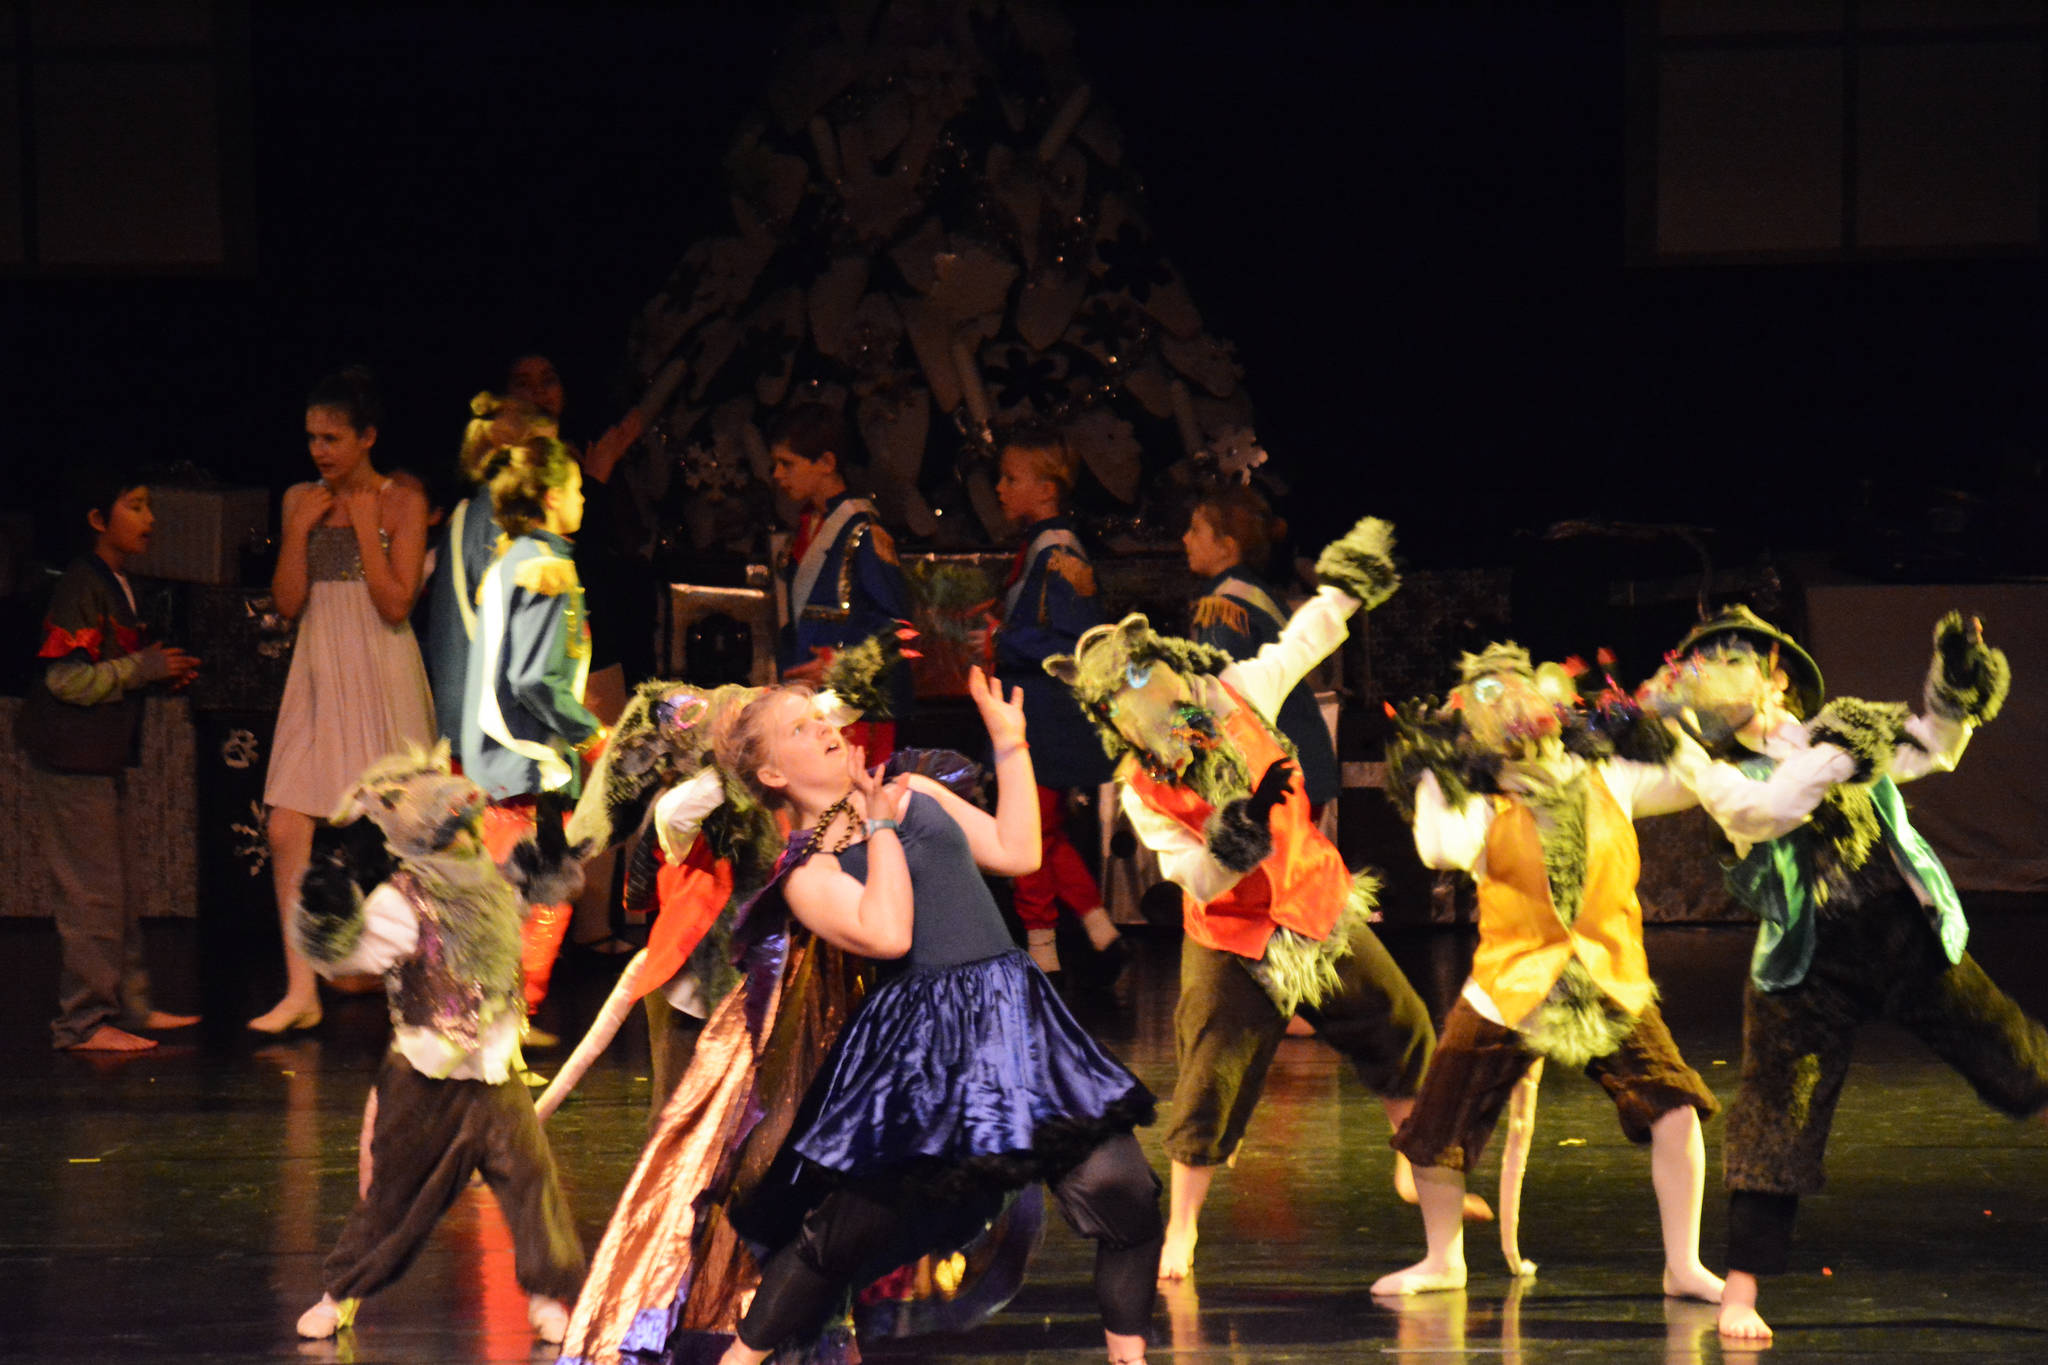 Daisy Kettle as Mistress Mousie, center, rehearses a scene with the rat army at the Mariner Theatre Friday, Nov. 24, 2017 in Homer, Alaska for the Nutcracker Ballet. (Photo by Michael Armstrong, Homer News)